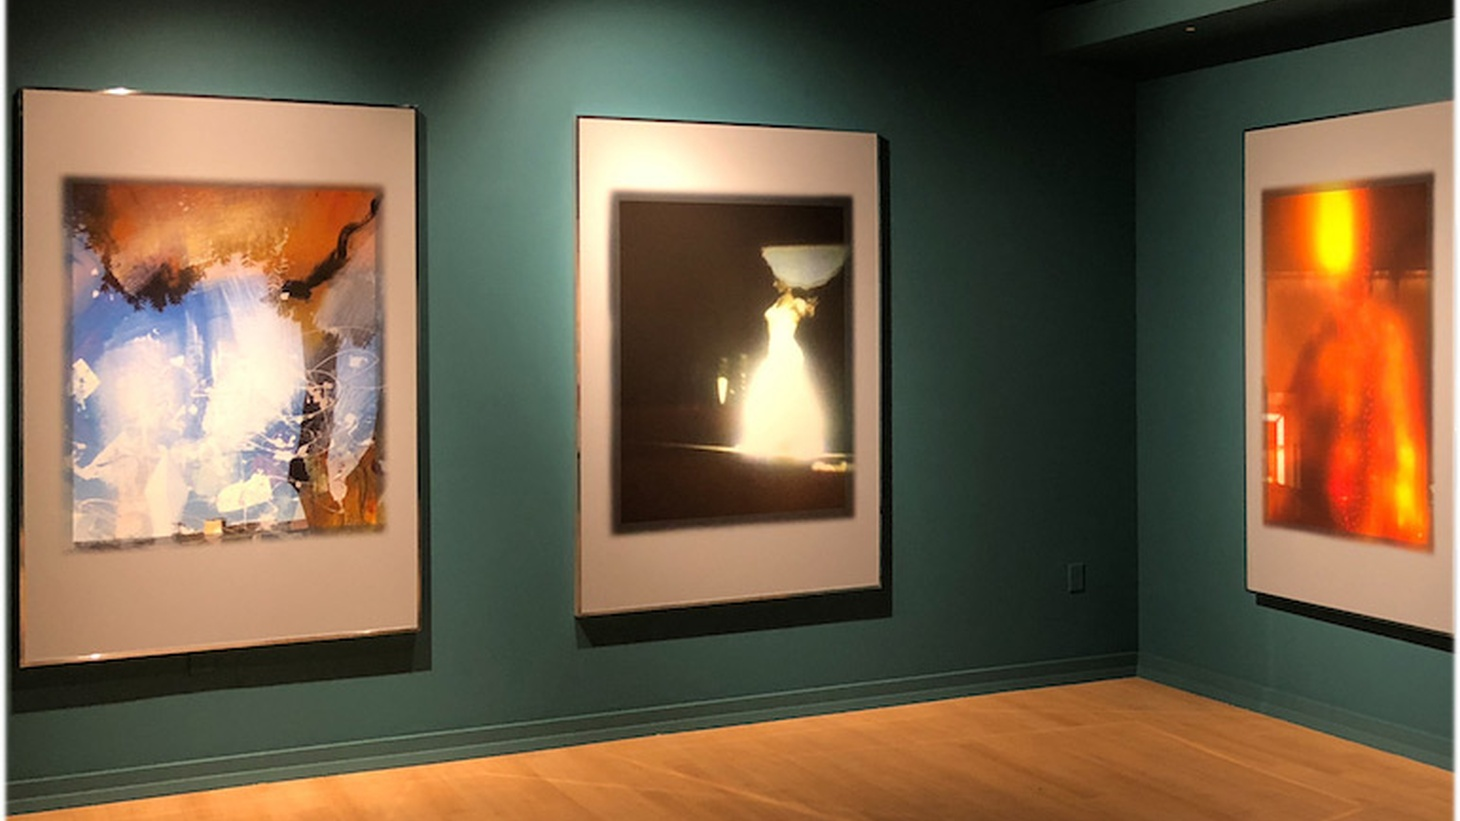 Edward Goldman talks about two new appealing and challenging exhibitions at USC Fisher Museum of Art.